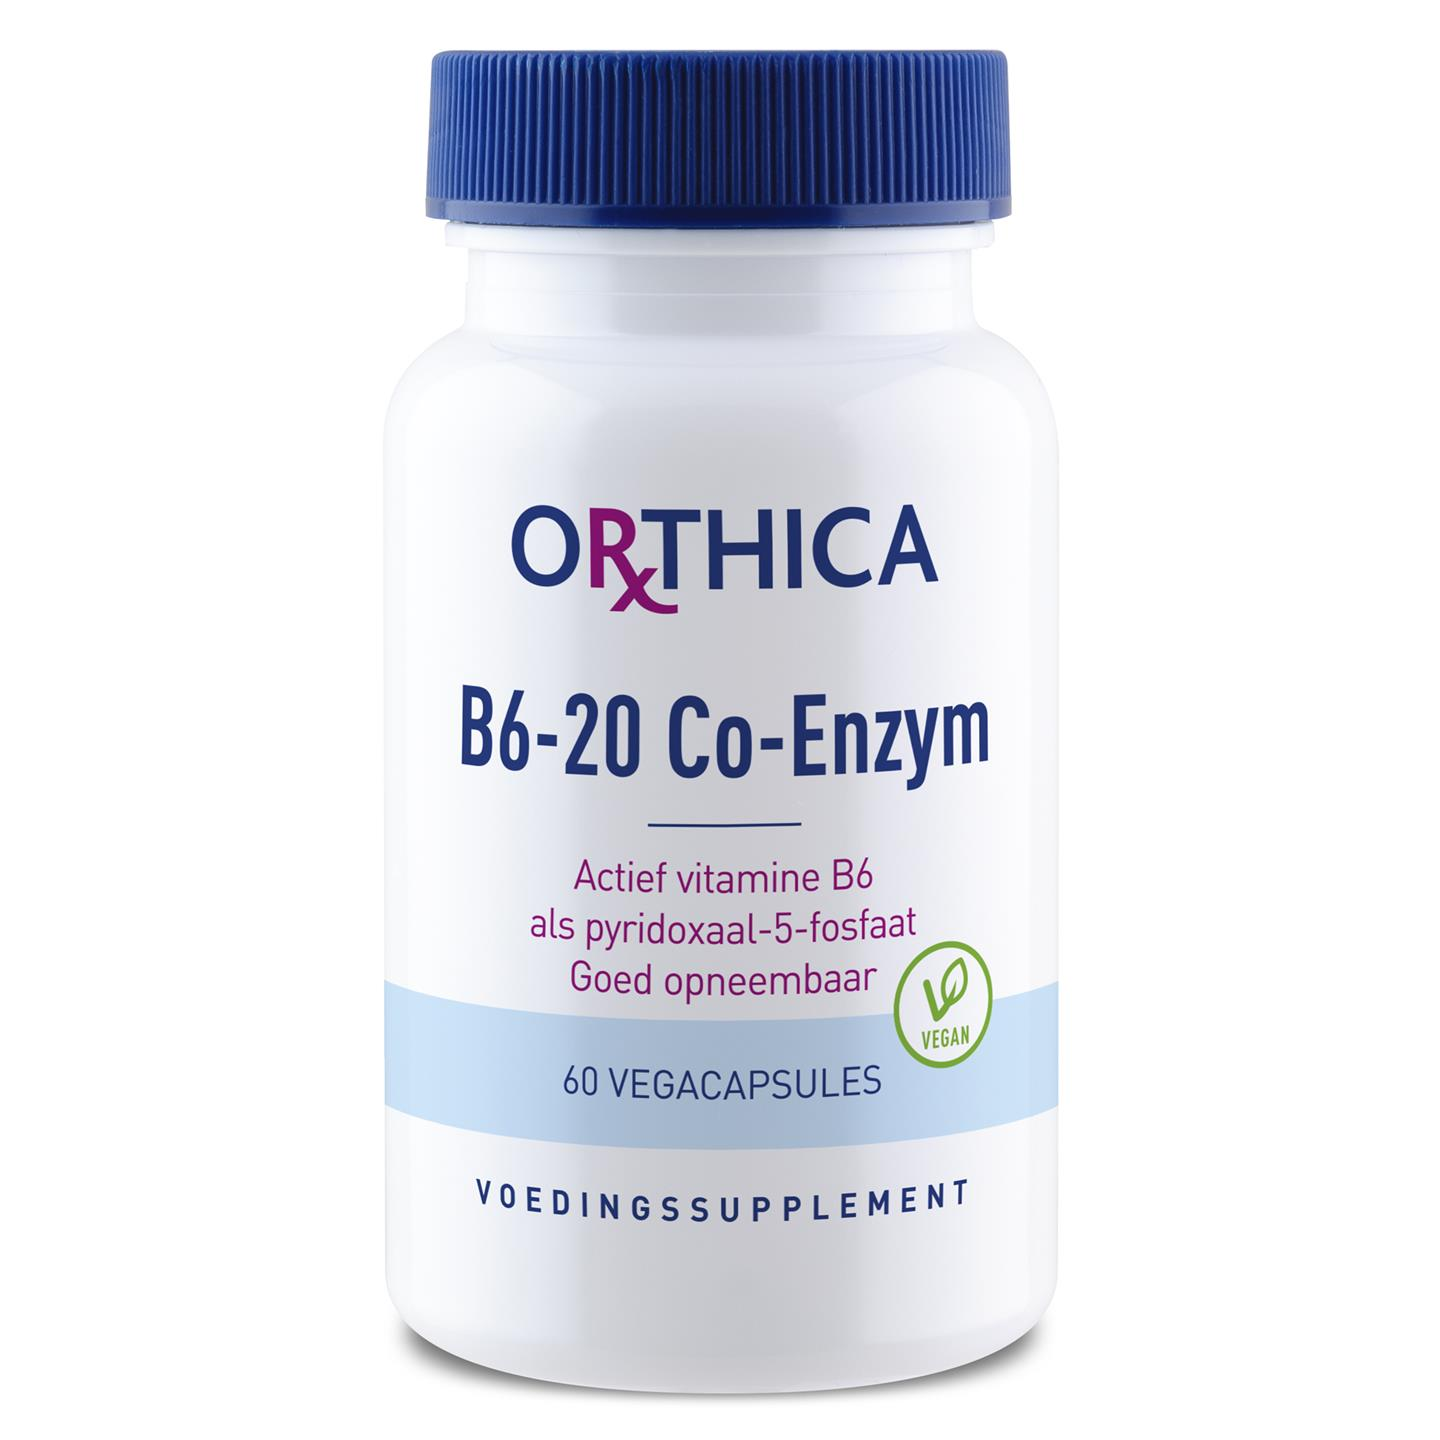 Image of B6-20 Co-Enzym